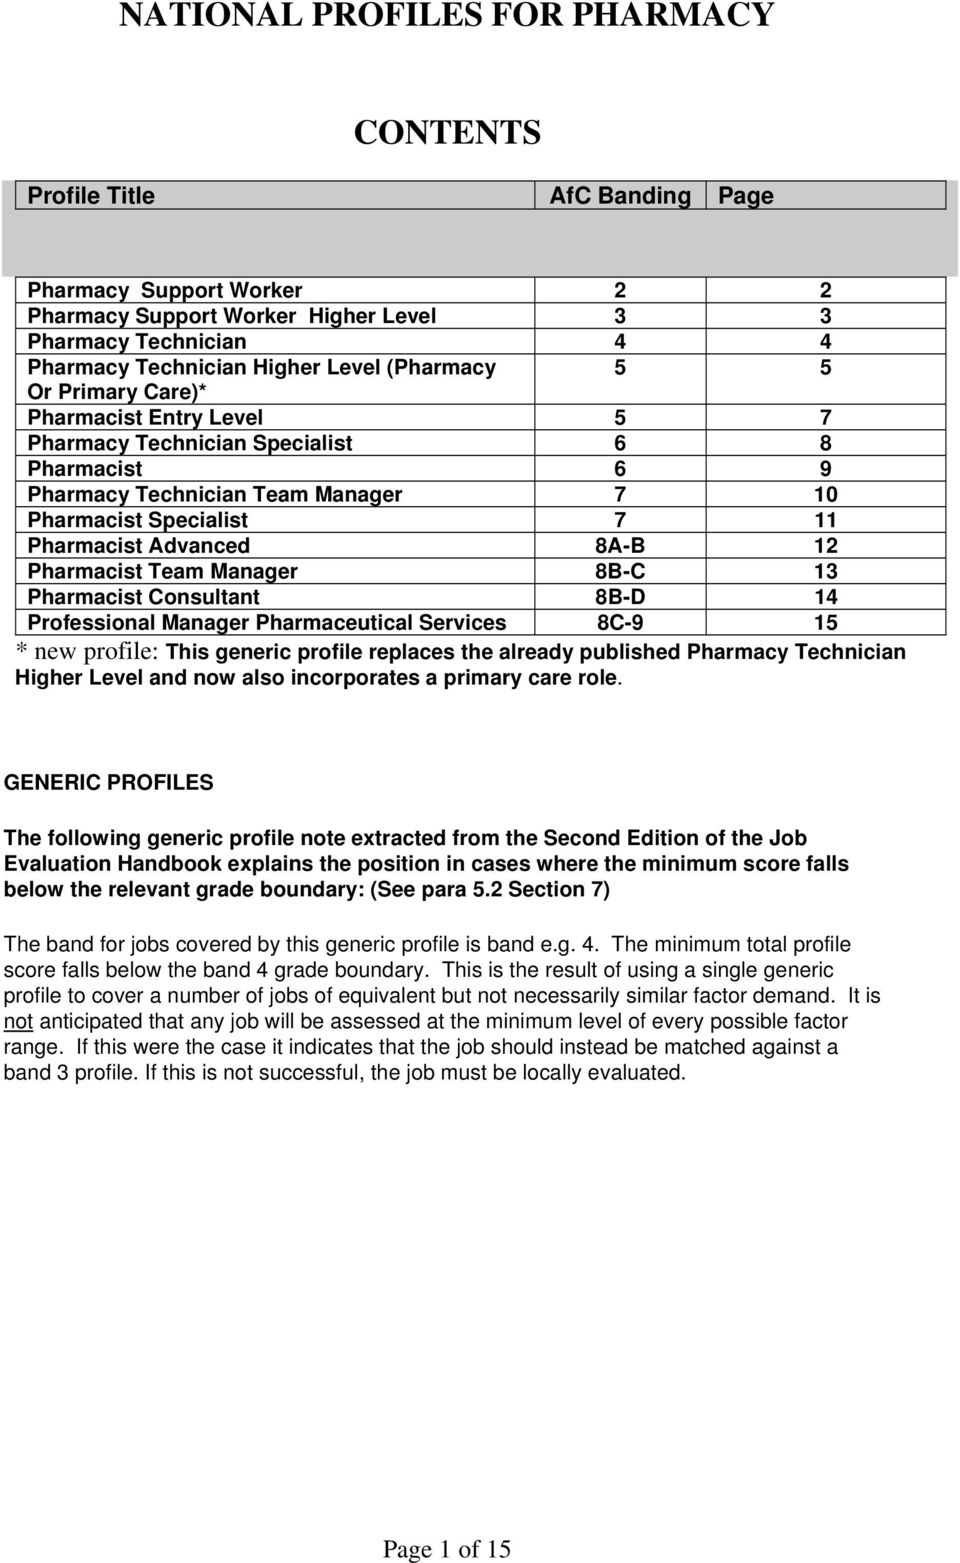 Pharmacist Team Manager 8B-C Pharmacist Consultant 8B-D 4 Professional Manager Pharmaceutical Services 8C-9 5 * new profile: This generic profile replaces the already published Pharmacy Technician